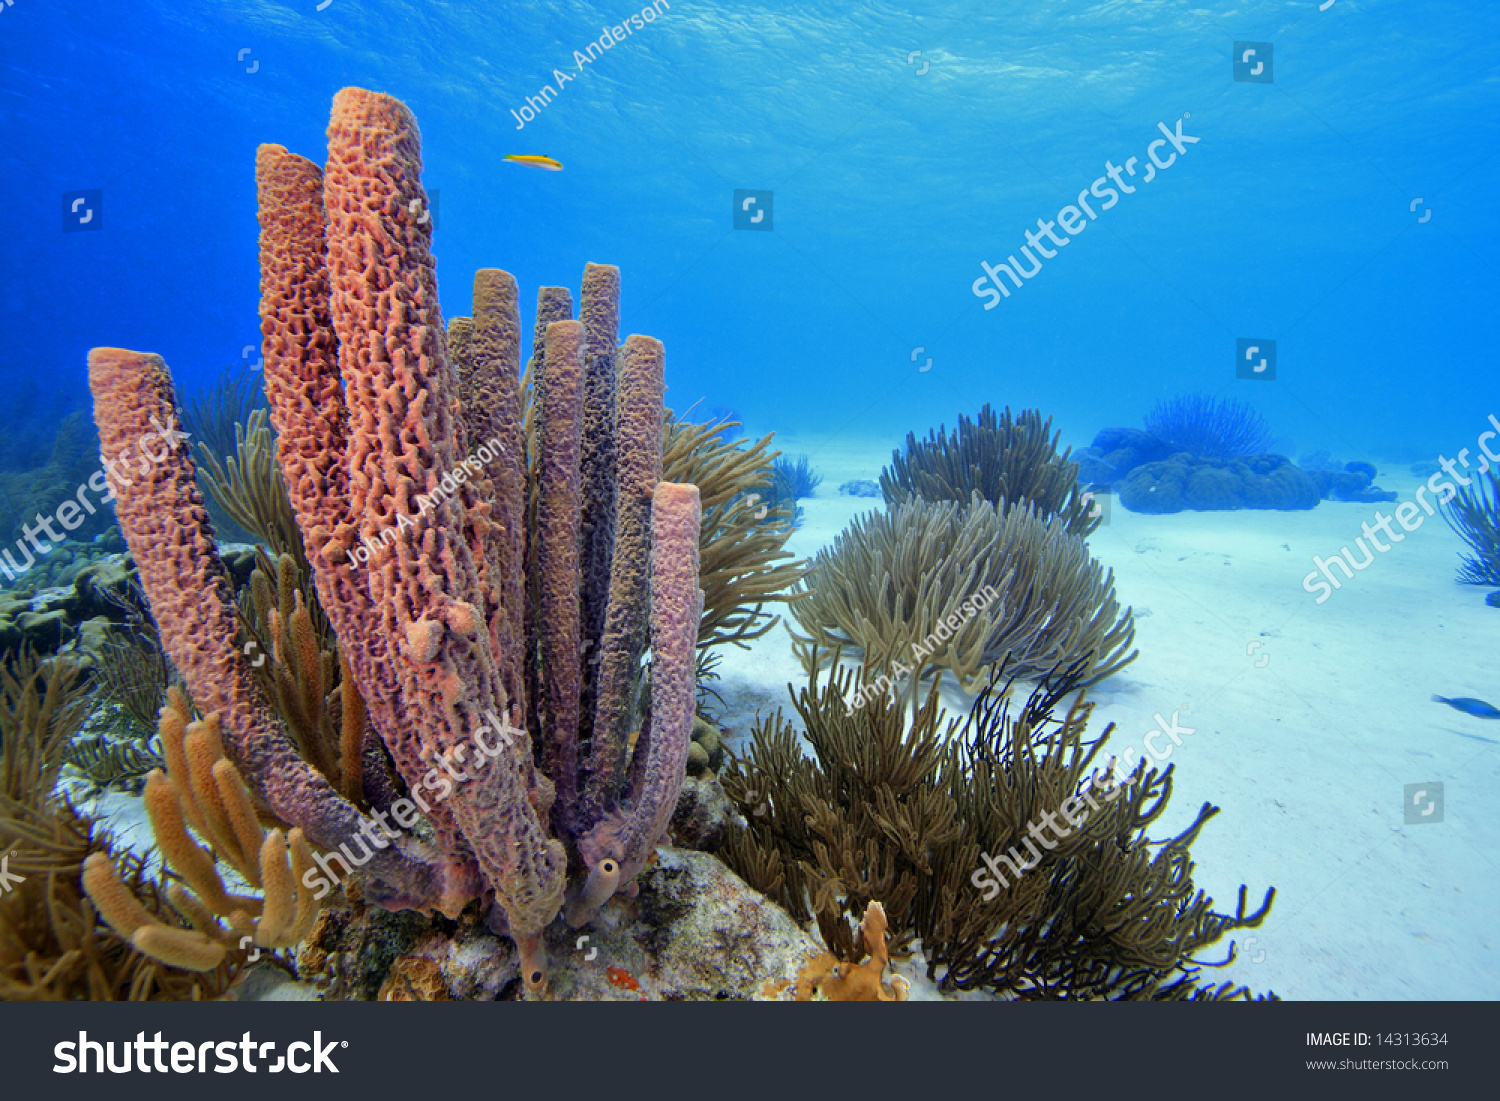 nature coral underwater landscape - photo #41